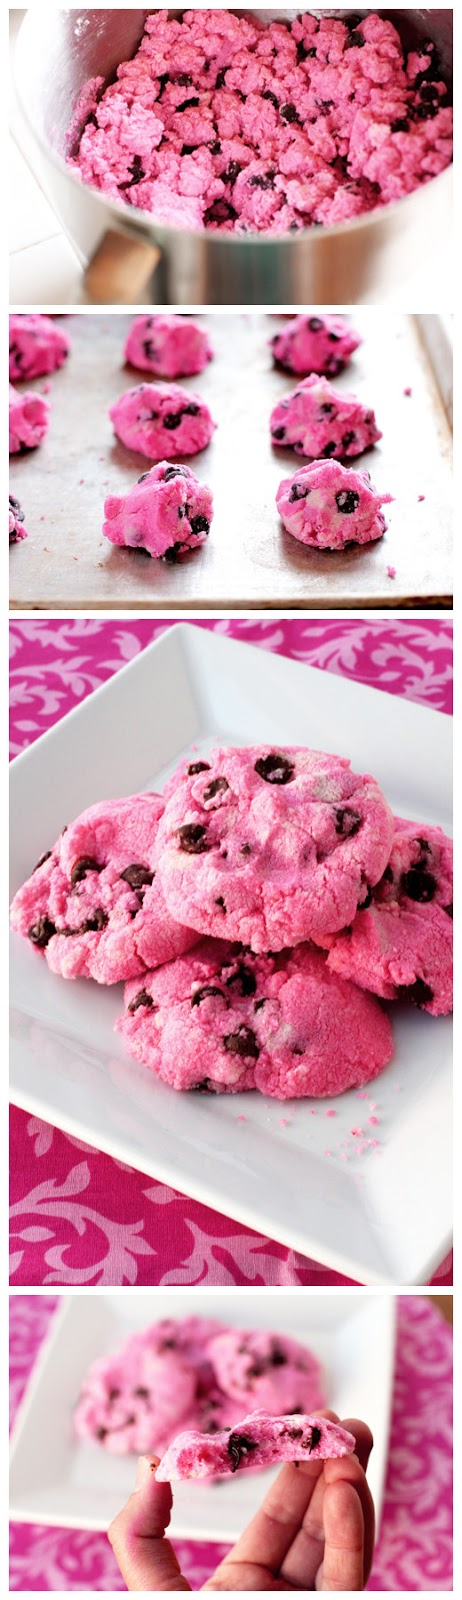 Pink Chocolate Chip Shortbread Cookies - kiss recipe